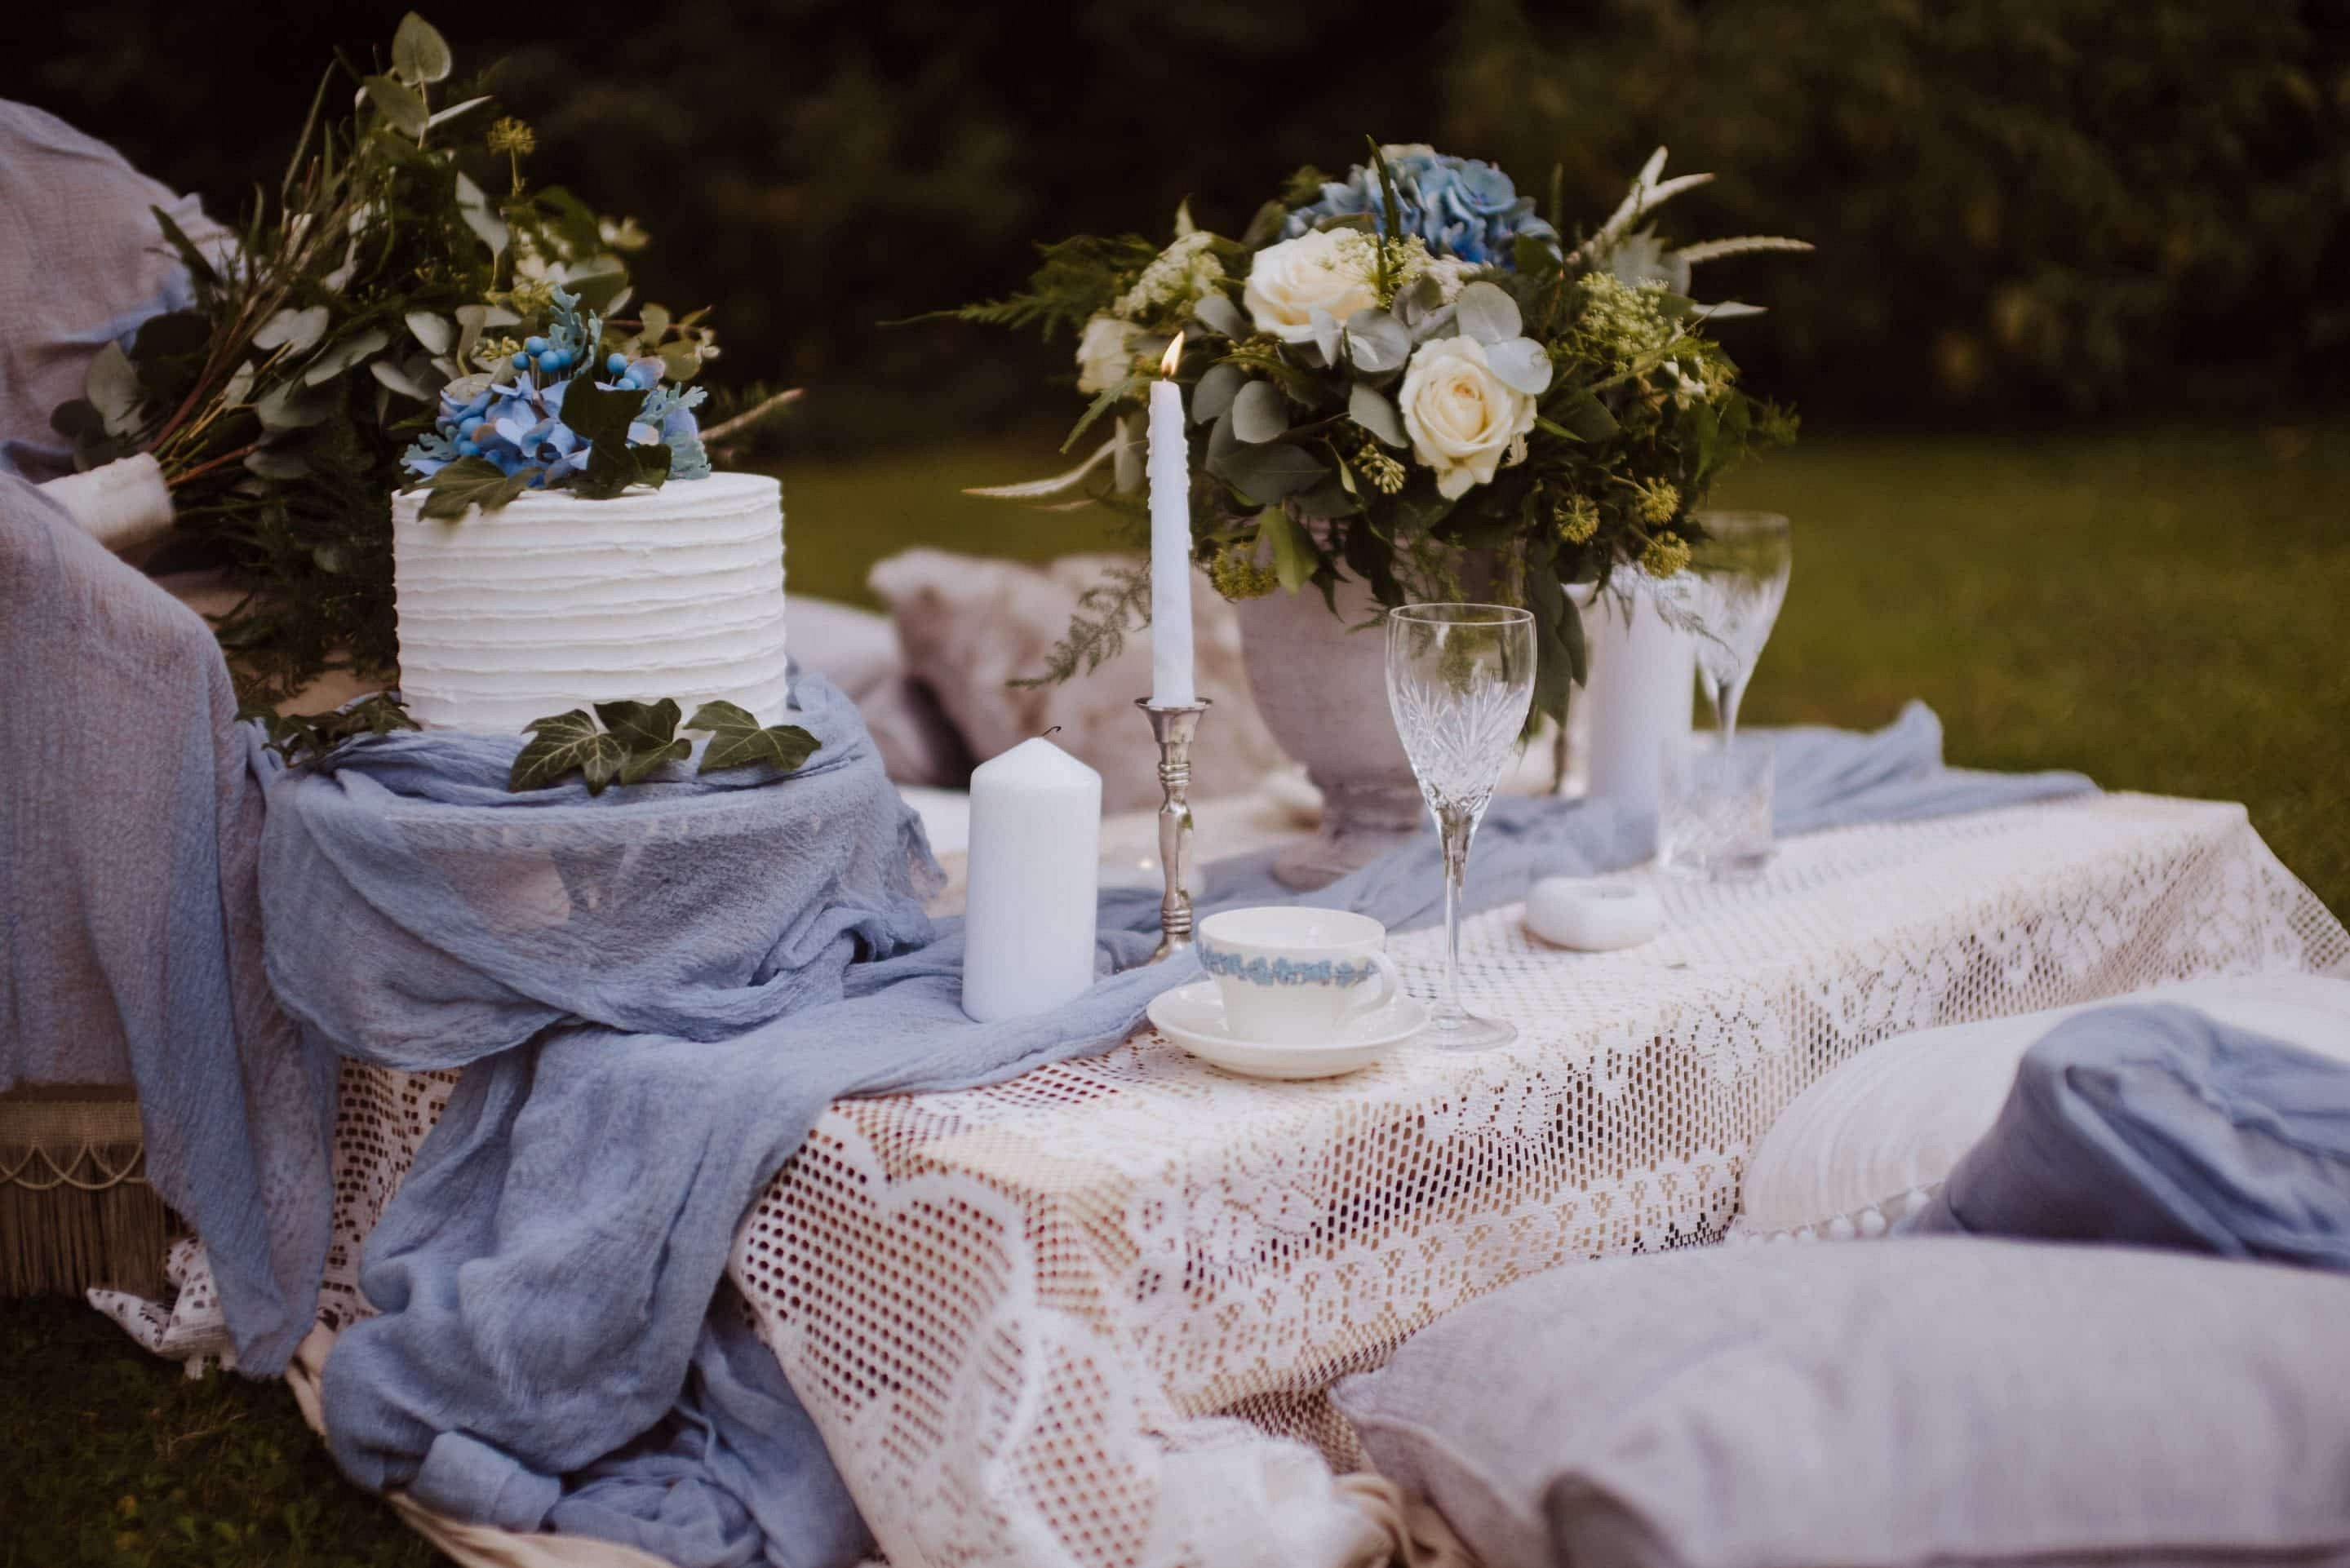 A Whimsical Elopement styled shoot